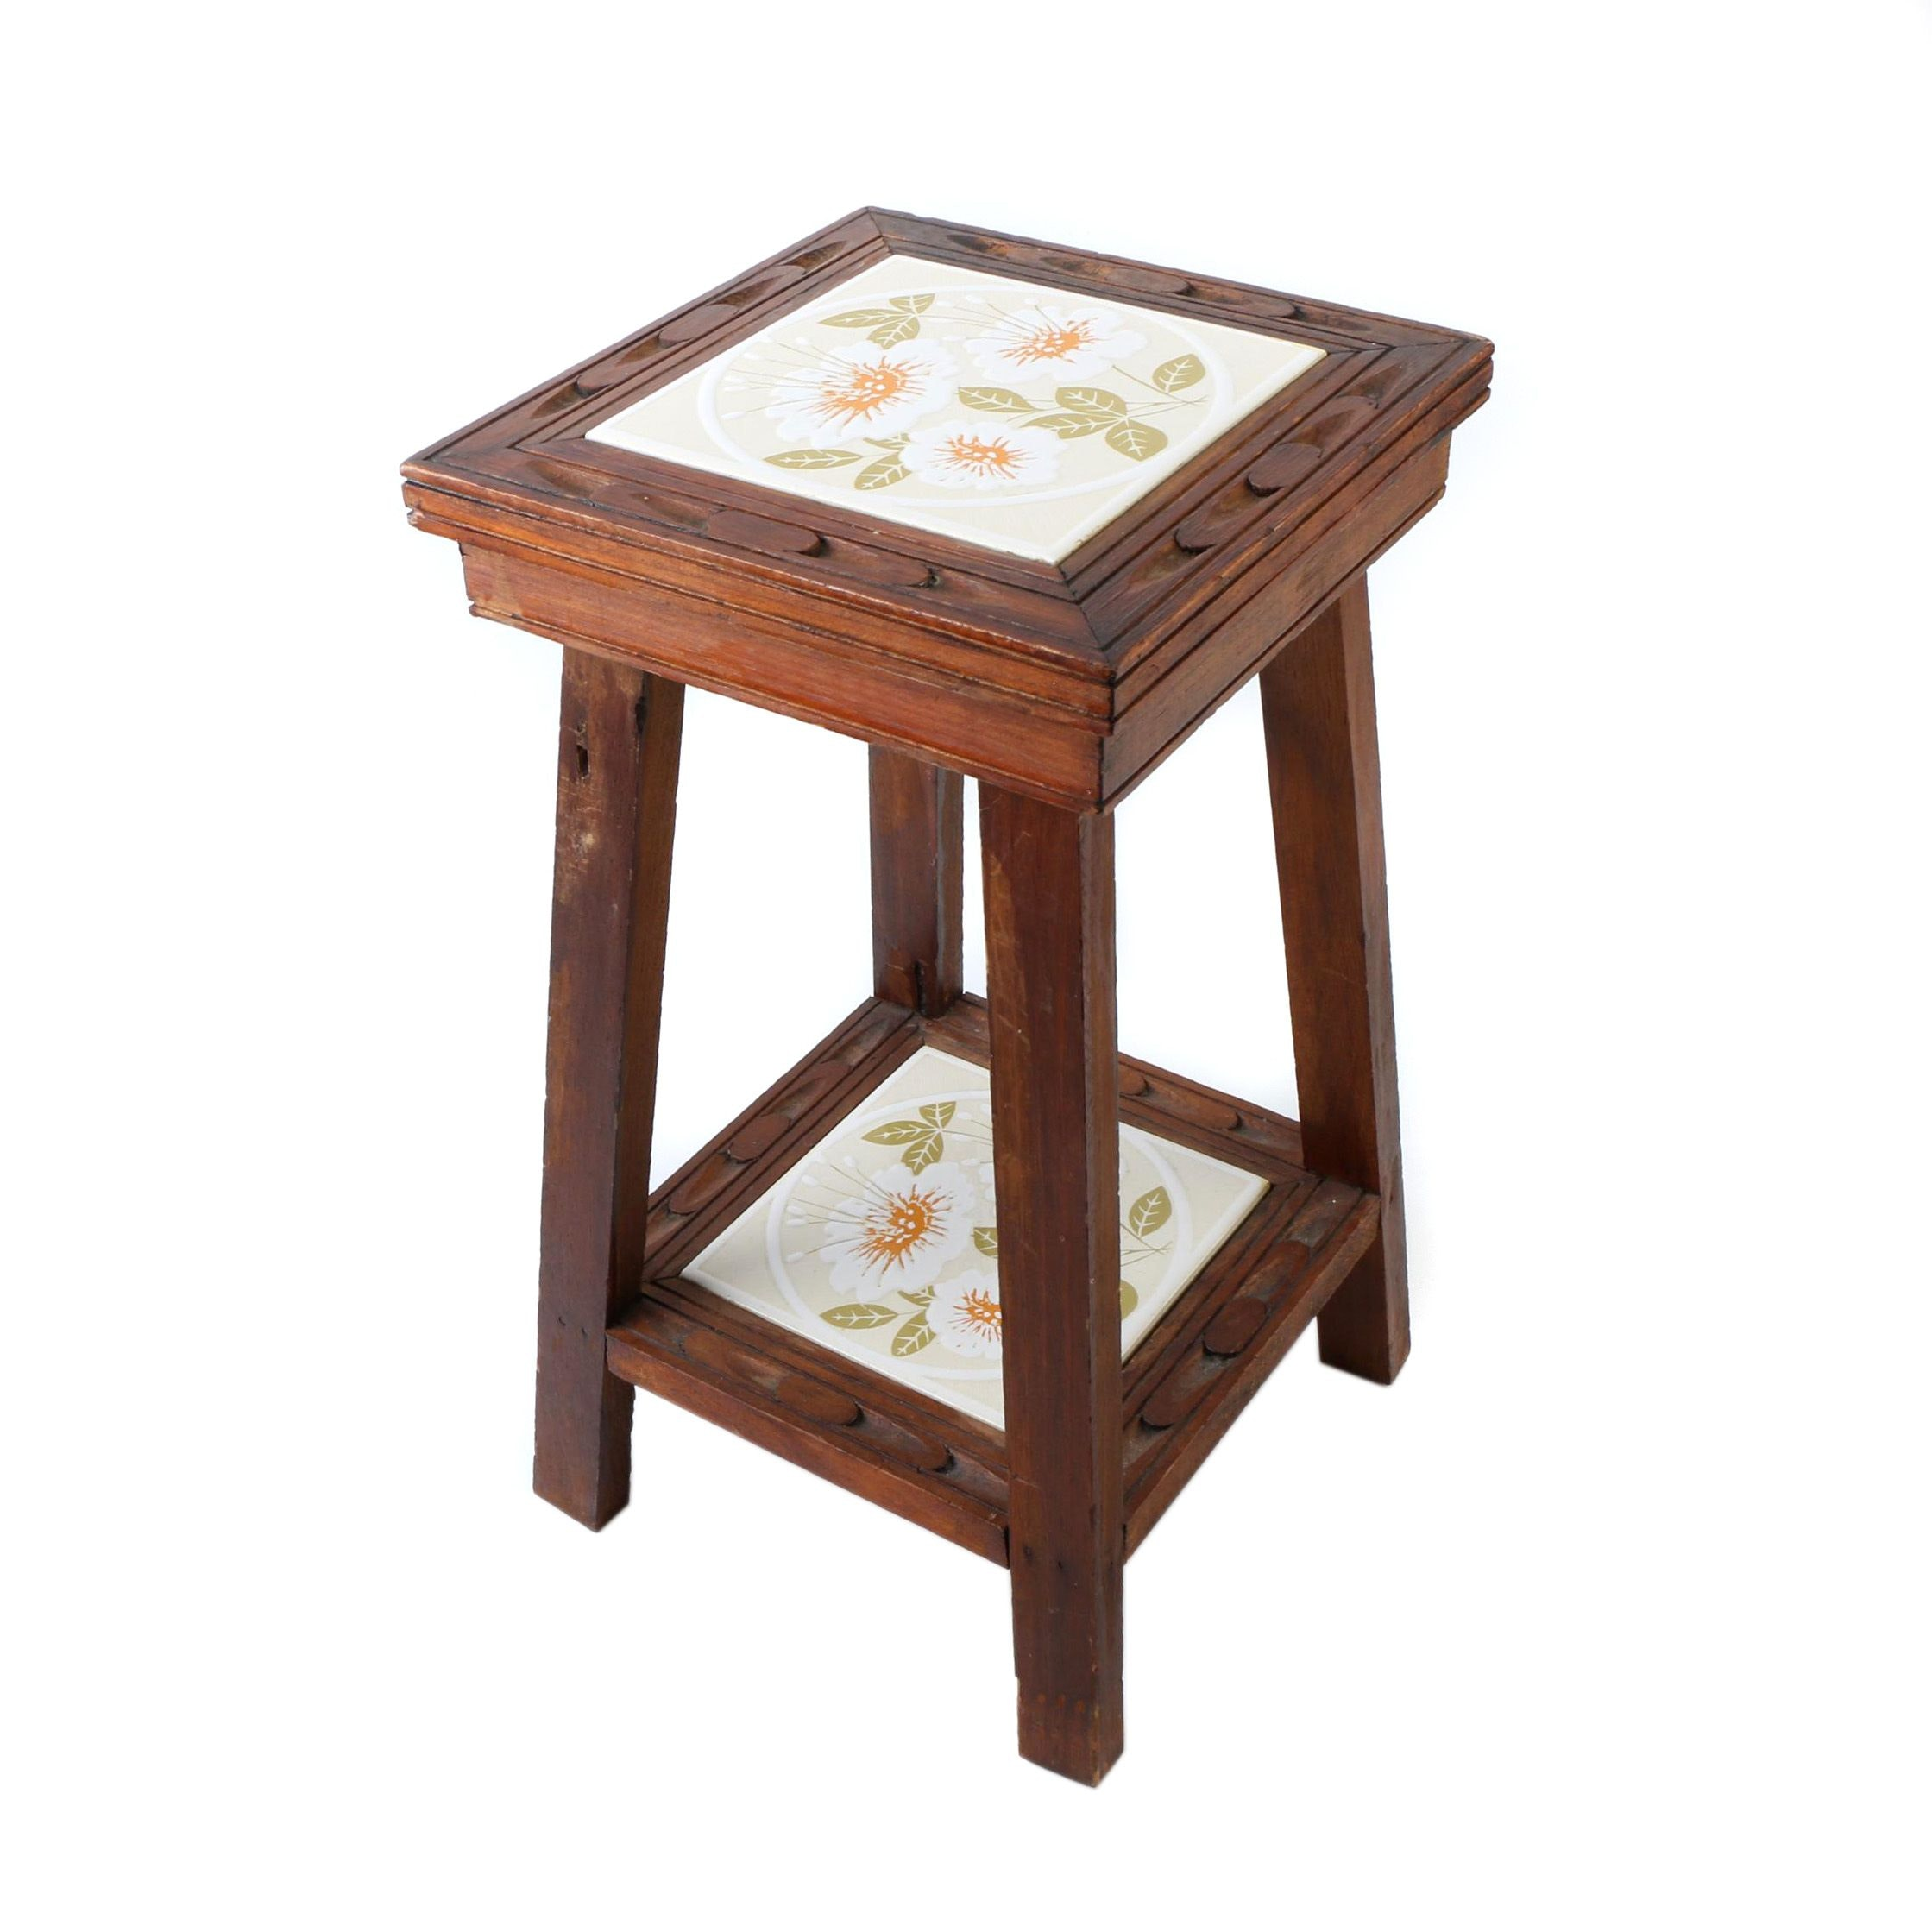 Mid-Century Decorative Tile Stand